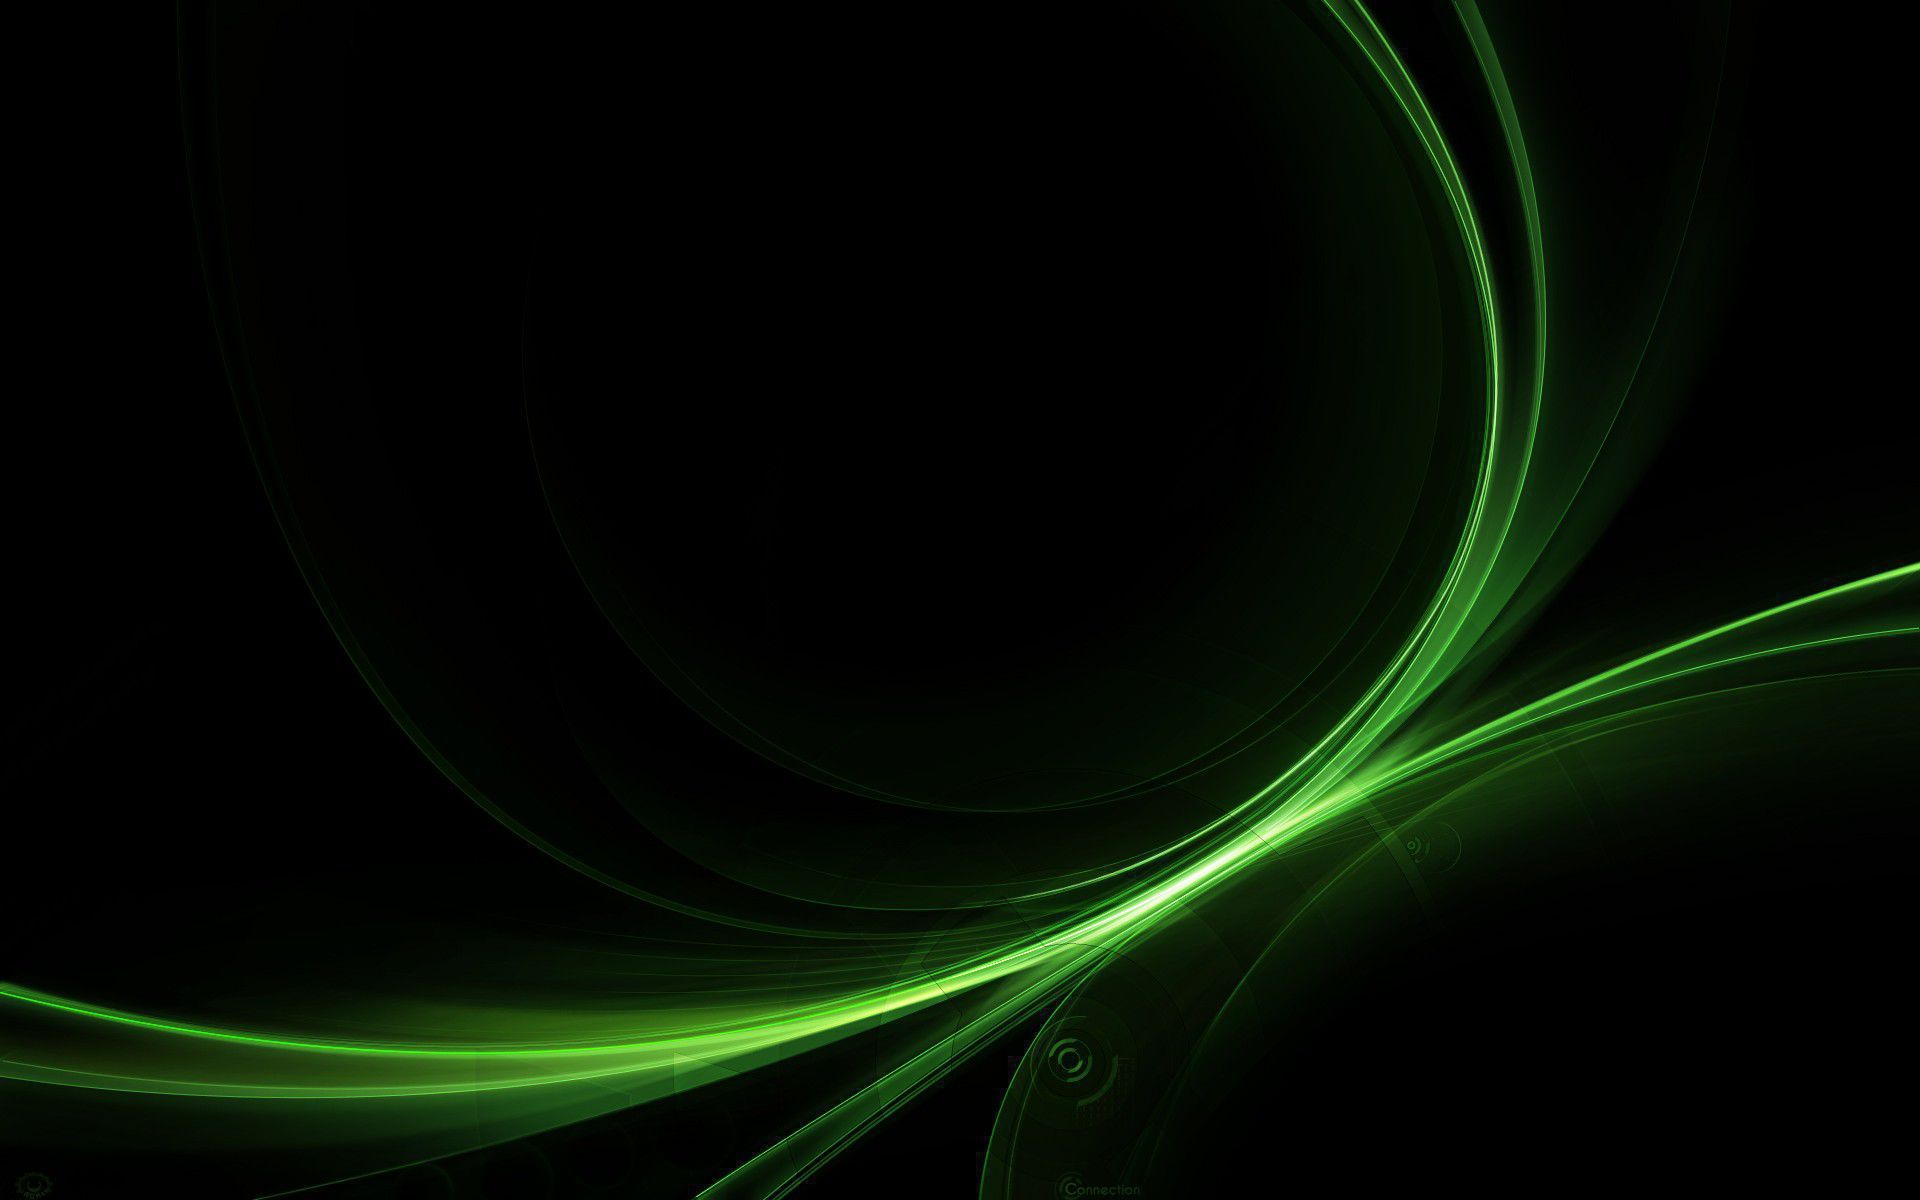 Black And Green In High Resolution